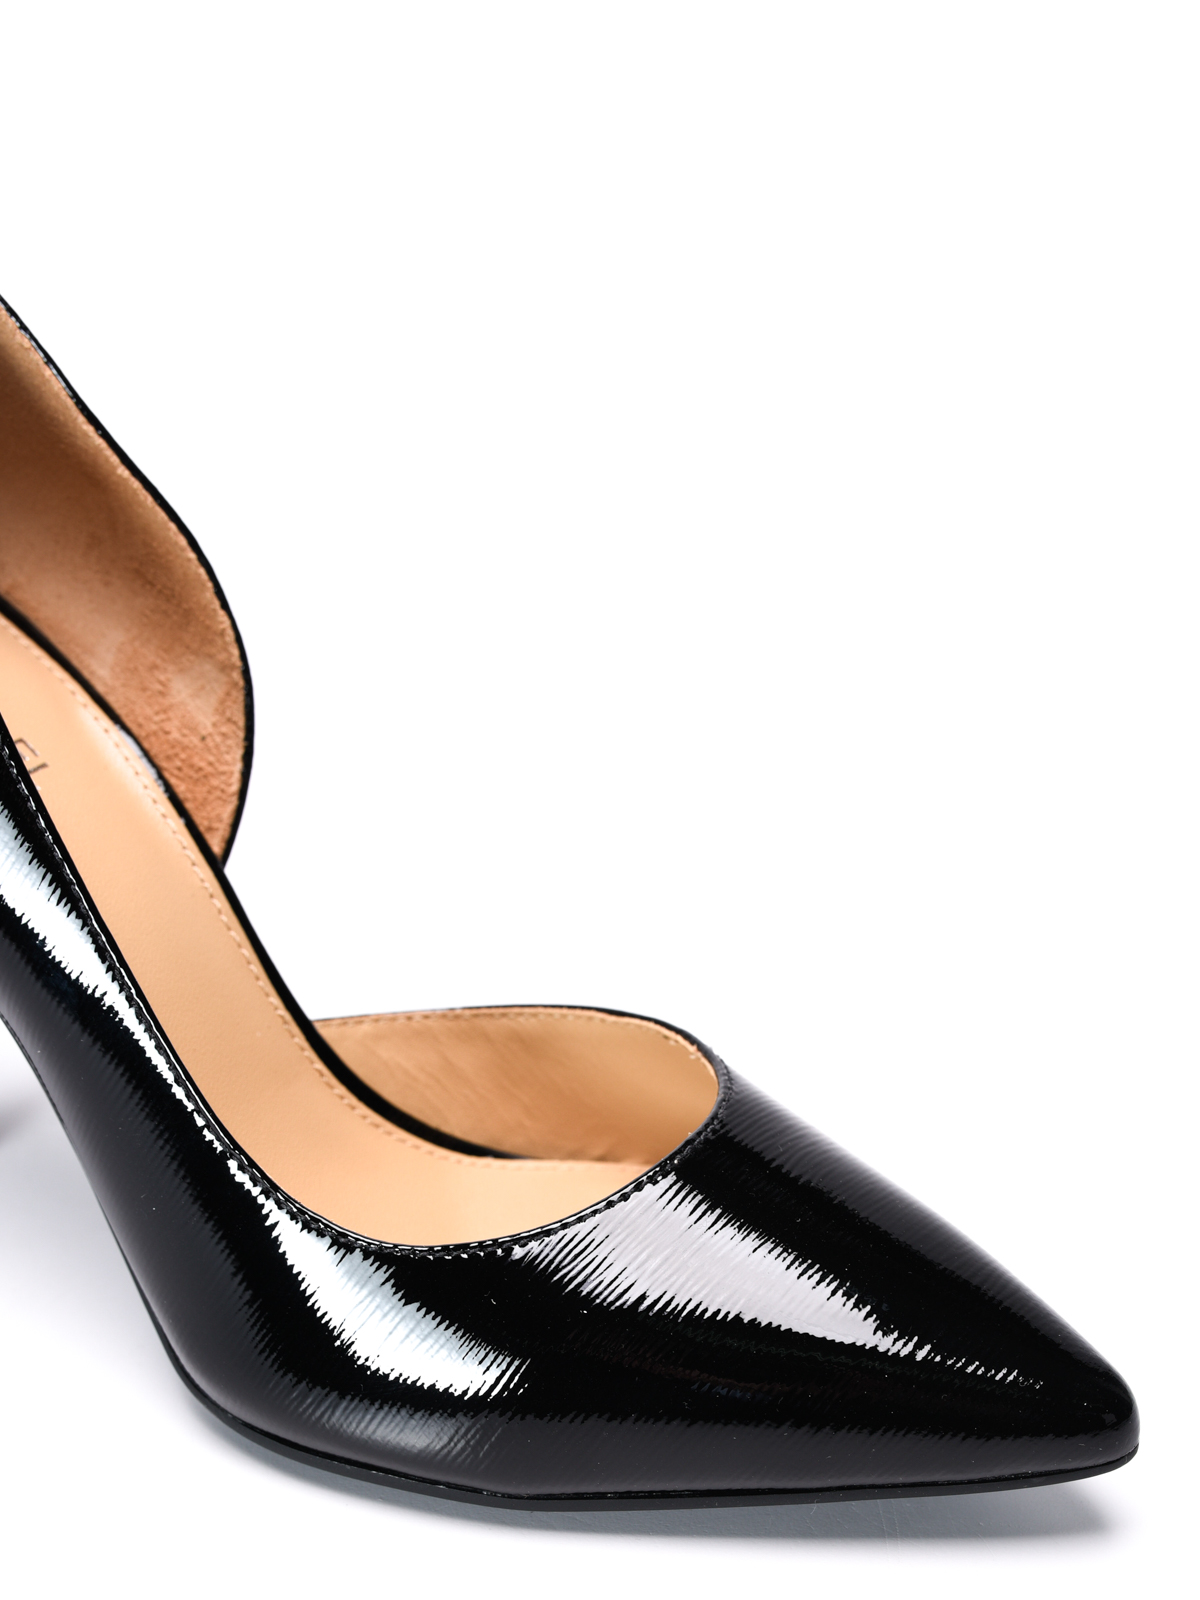 Michael Kors Nathalie Flex patent leather pumps court